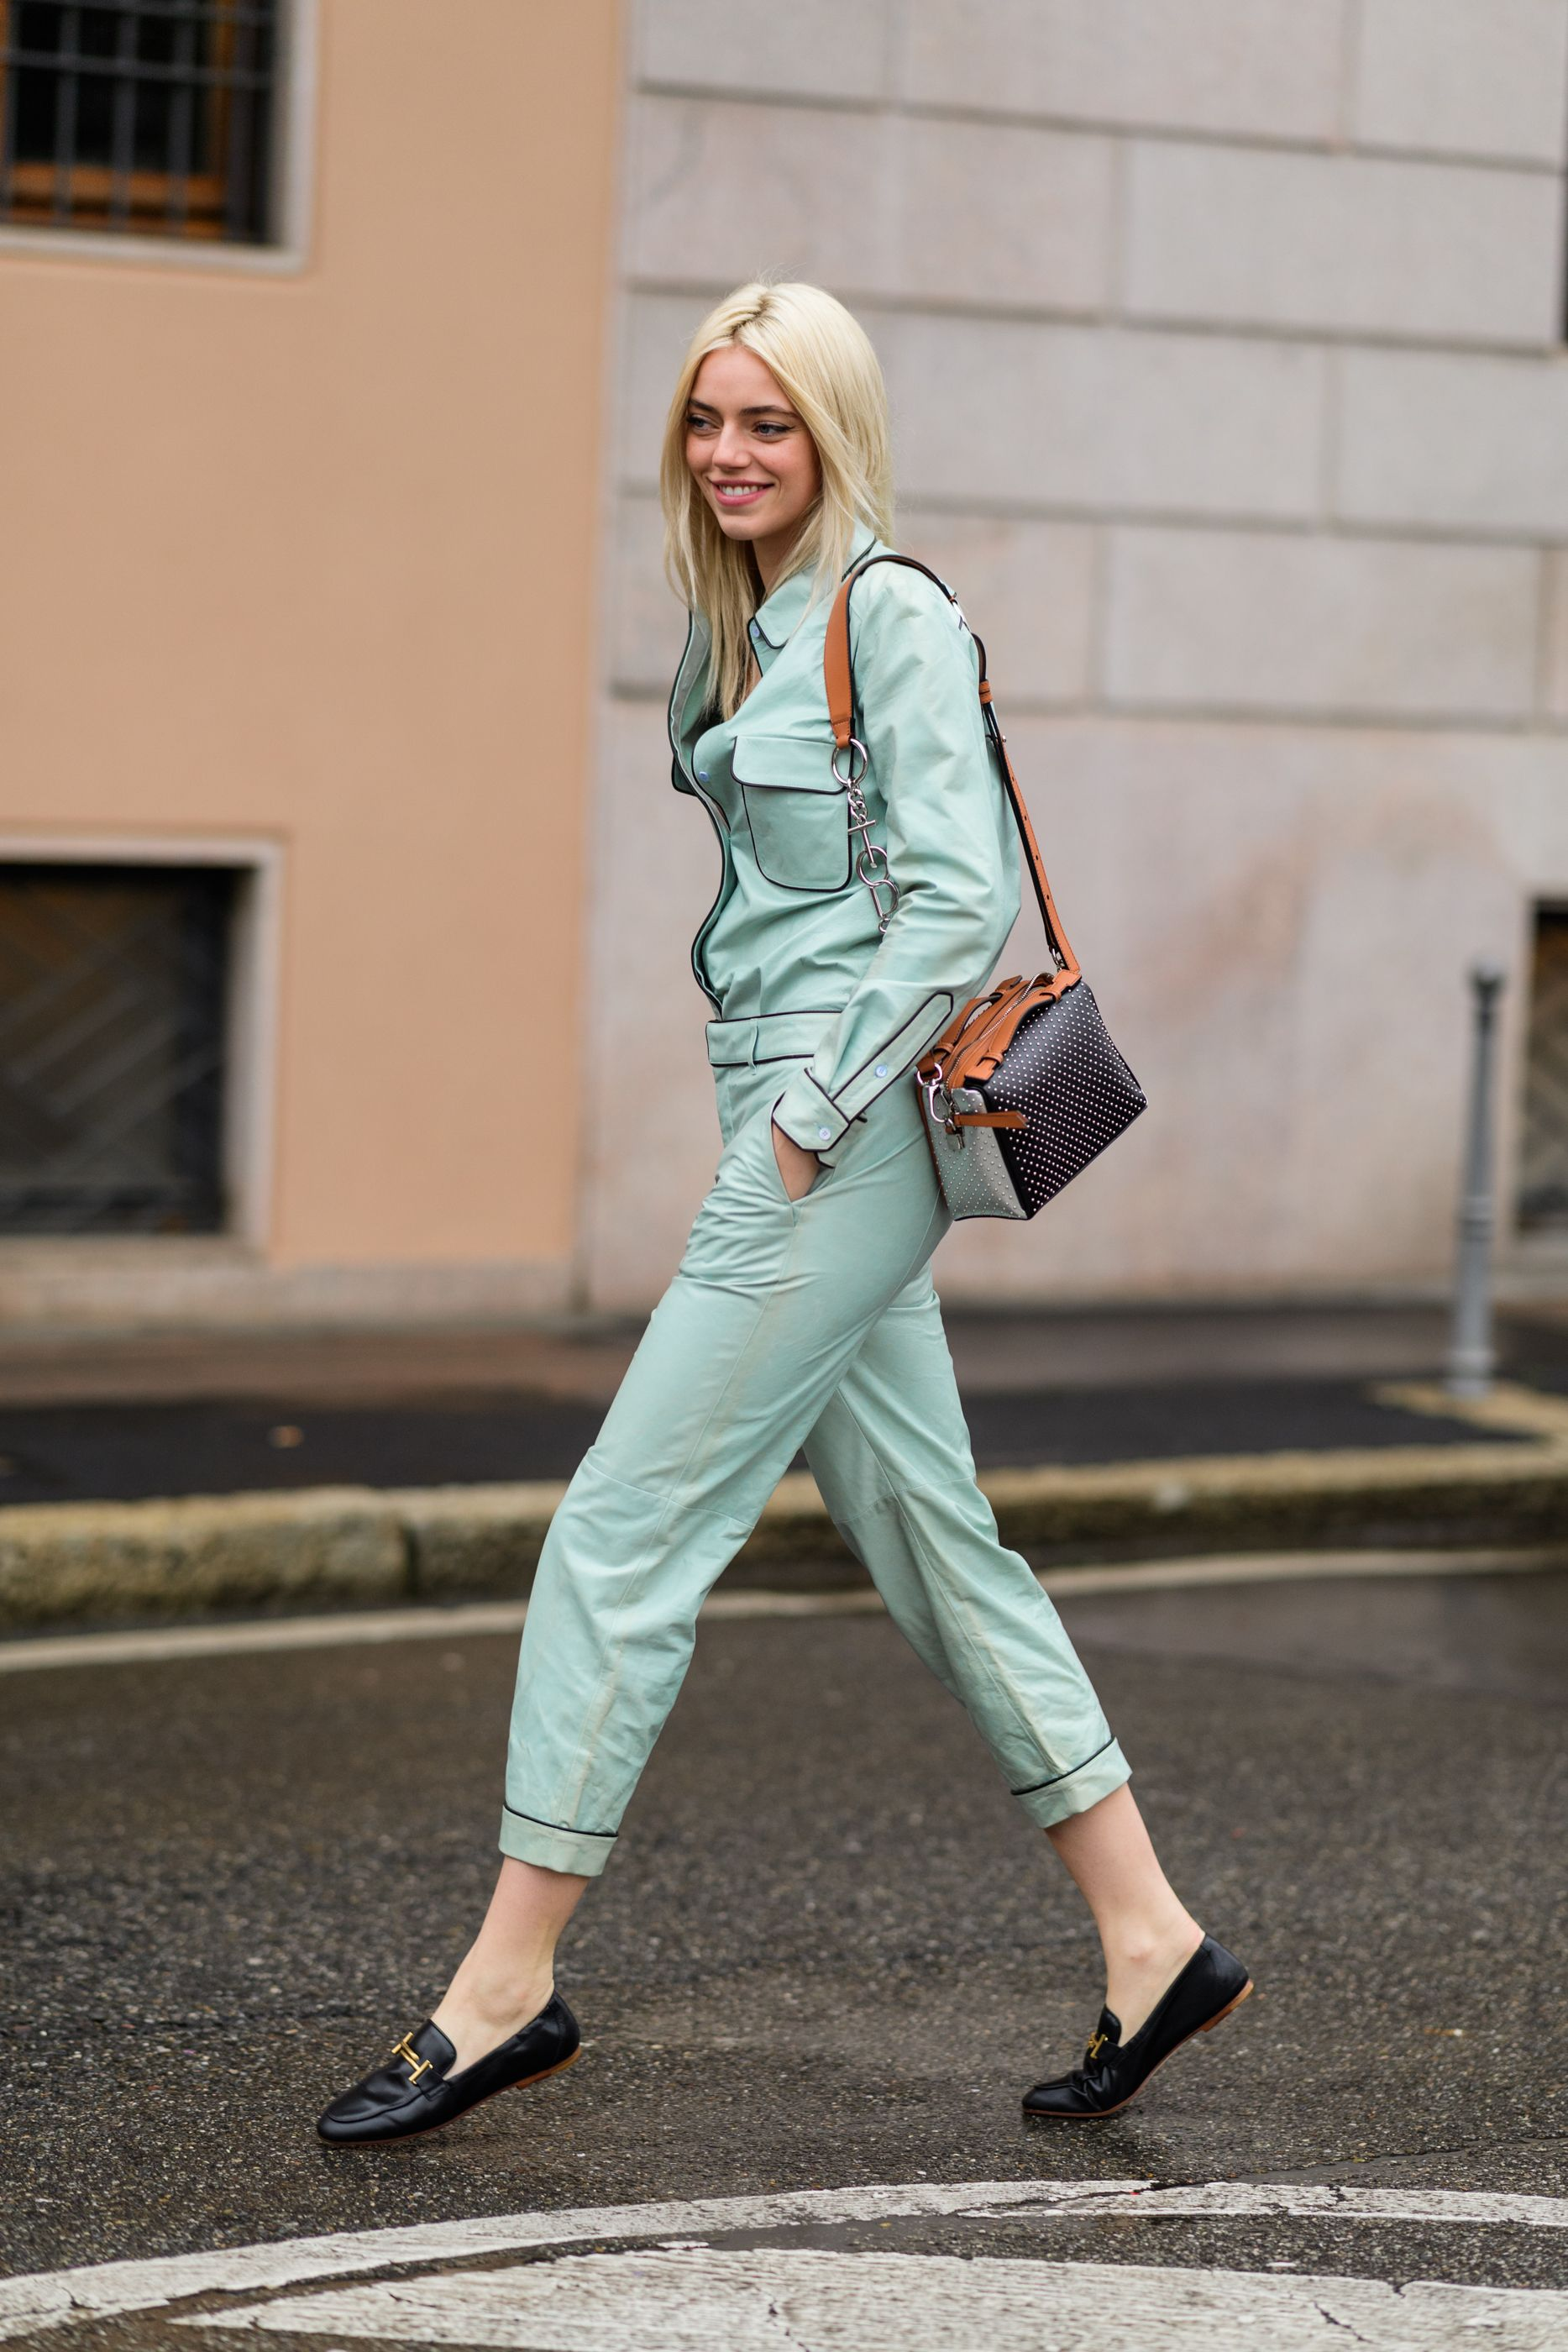 Best Street Style Spotted at MFW – Best Outfits From Fall Milan Fashion Week 8f0117e7ca5